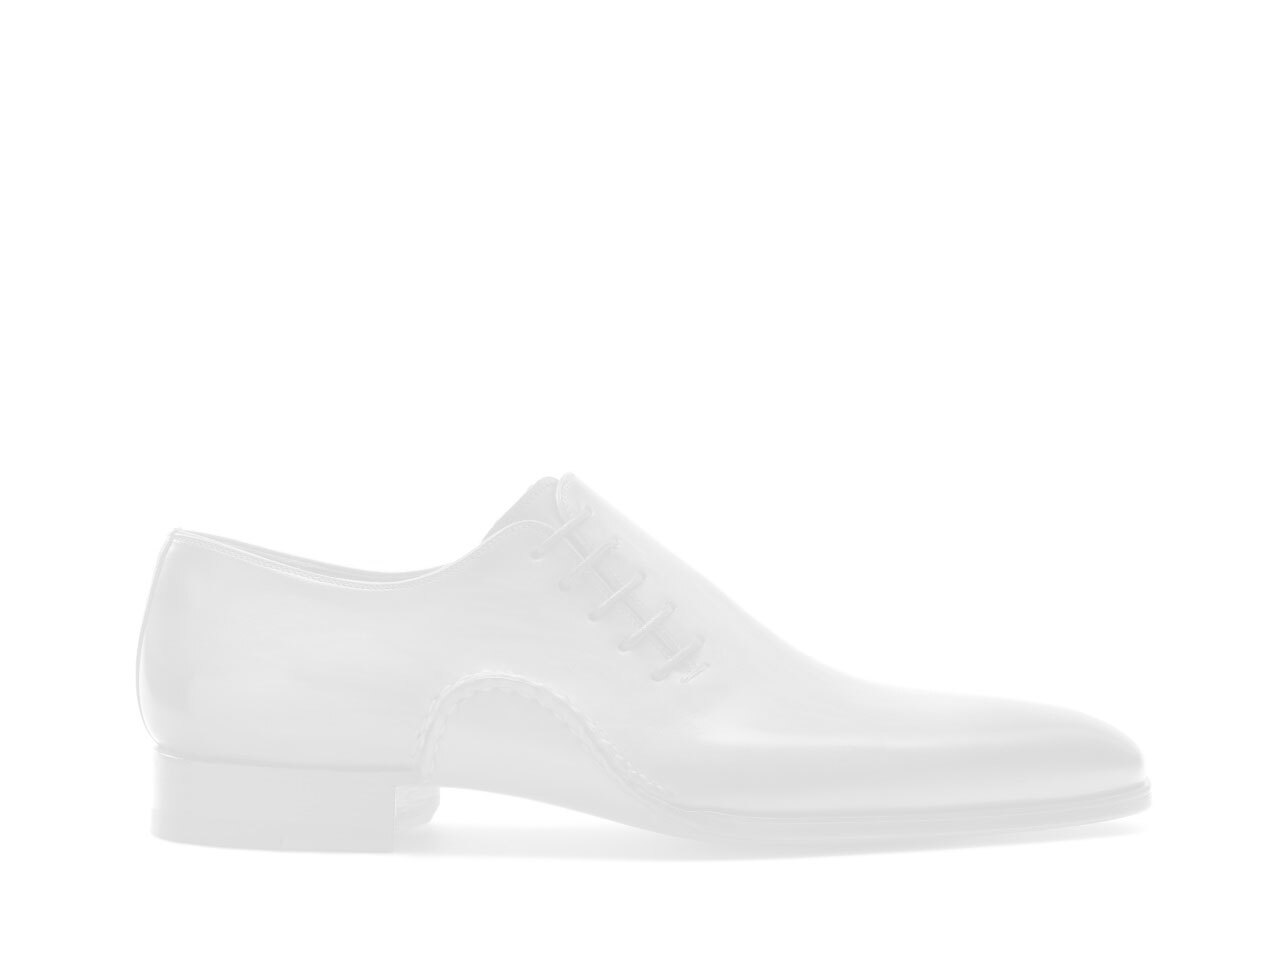 Side view of the Magnanni Reina II White and Black Men's Sneakers